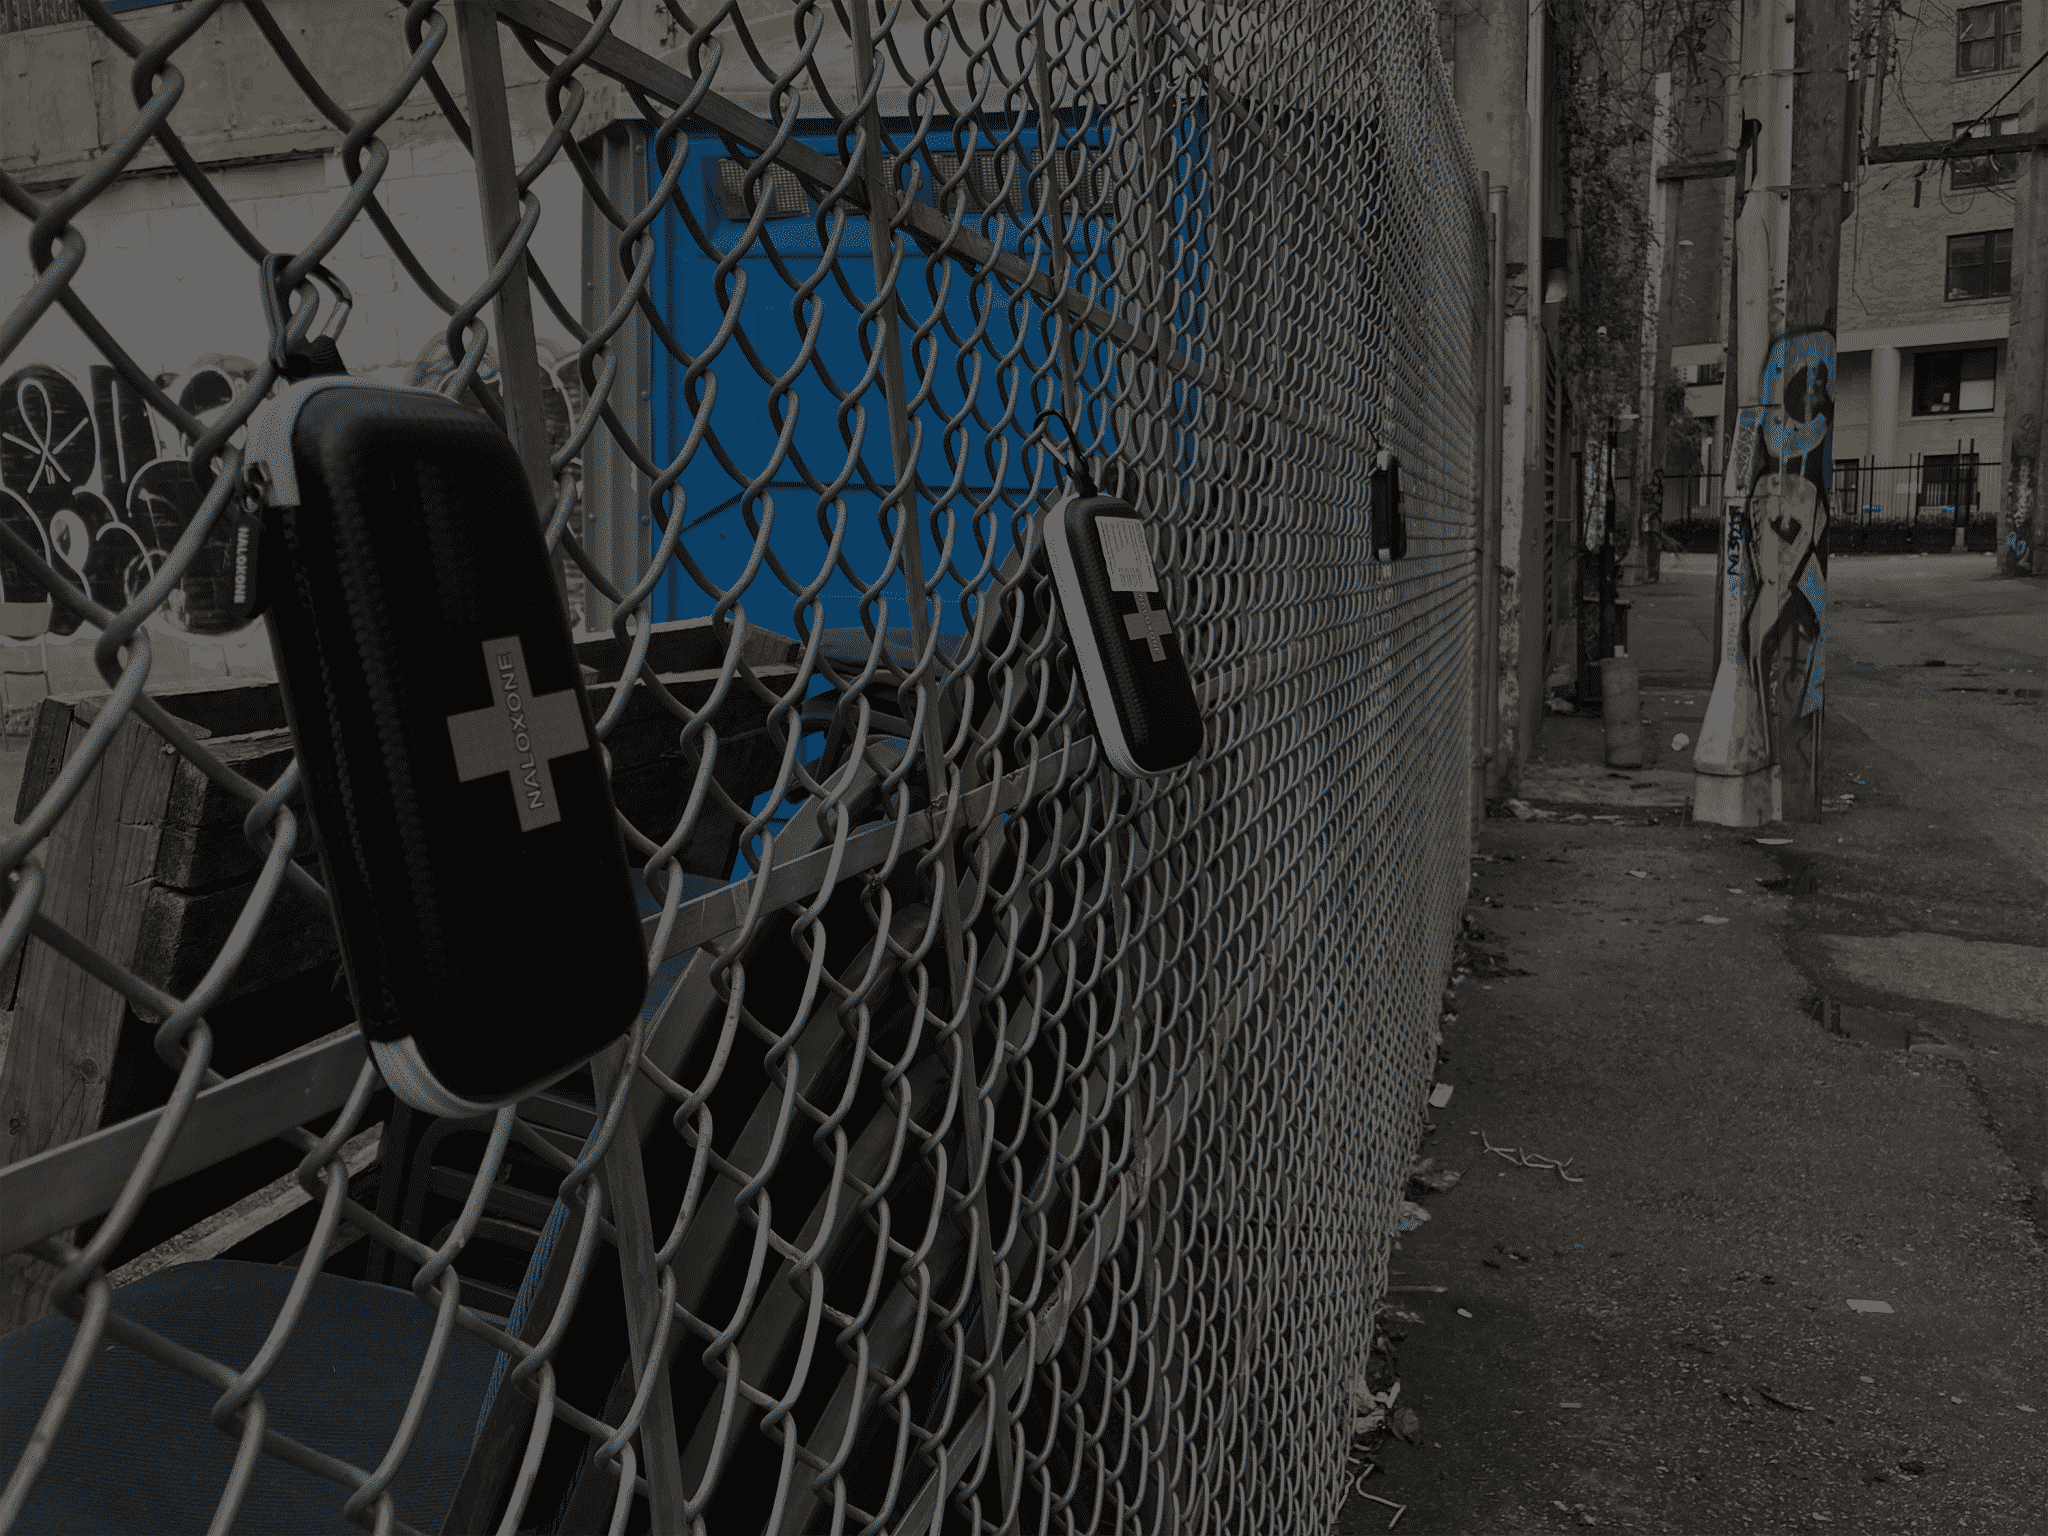 Naloxone case on a chain link fence